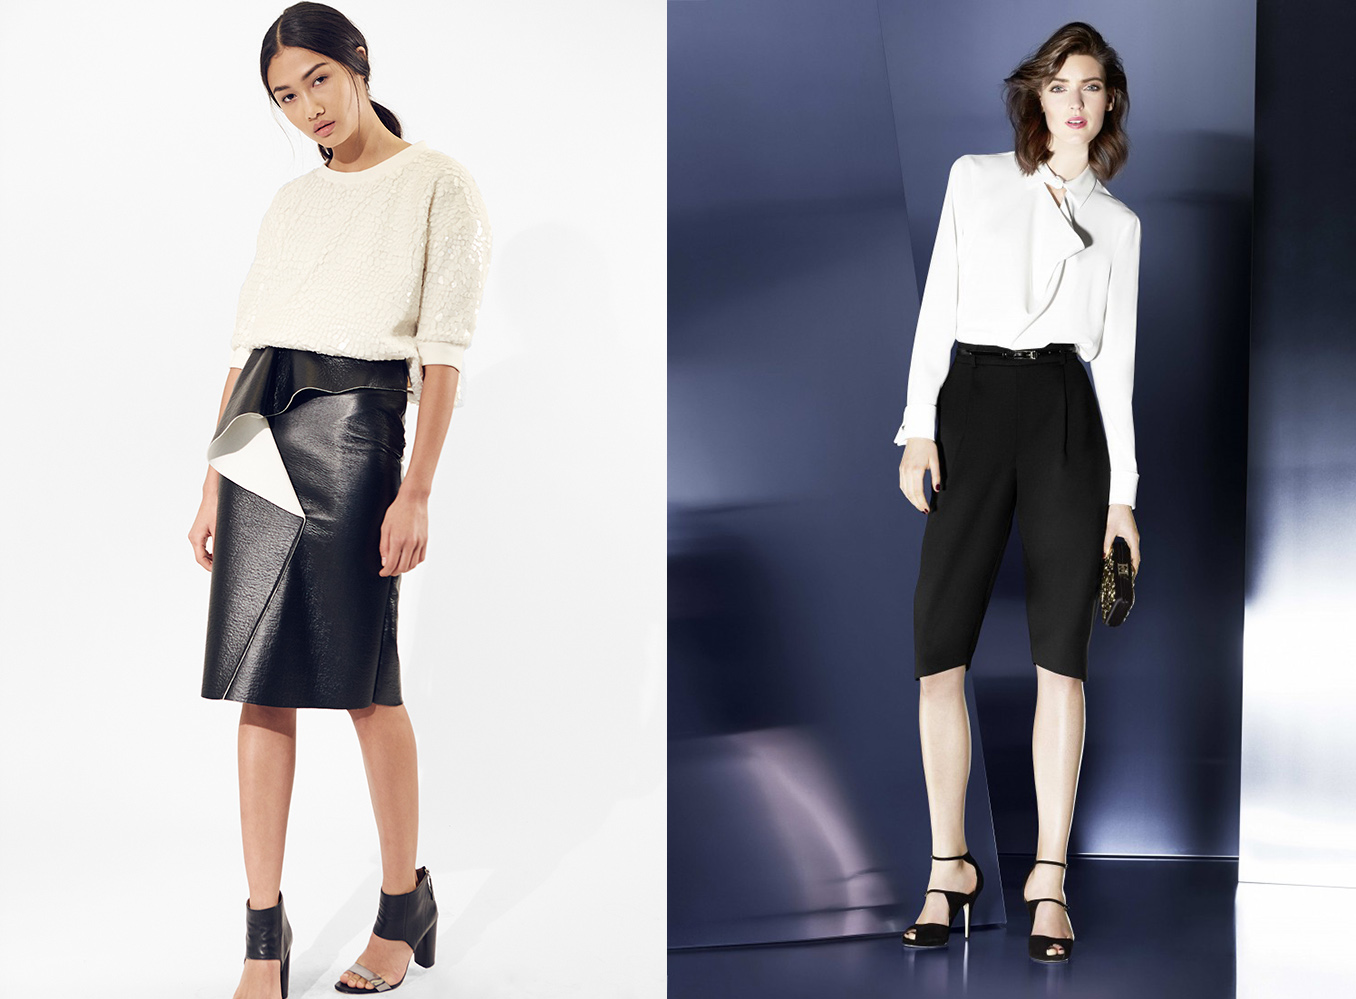 How To Wear And Style Black Pants With White Shirts